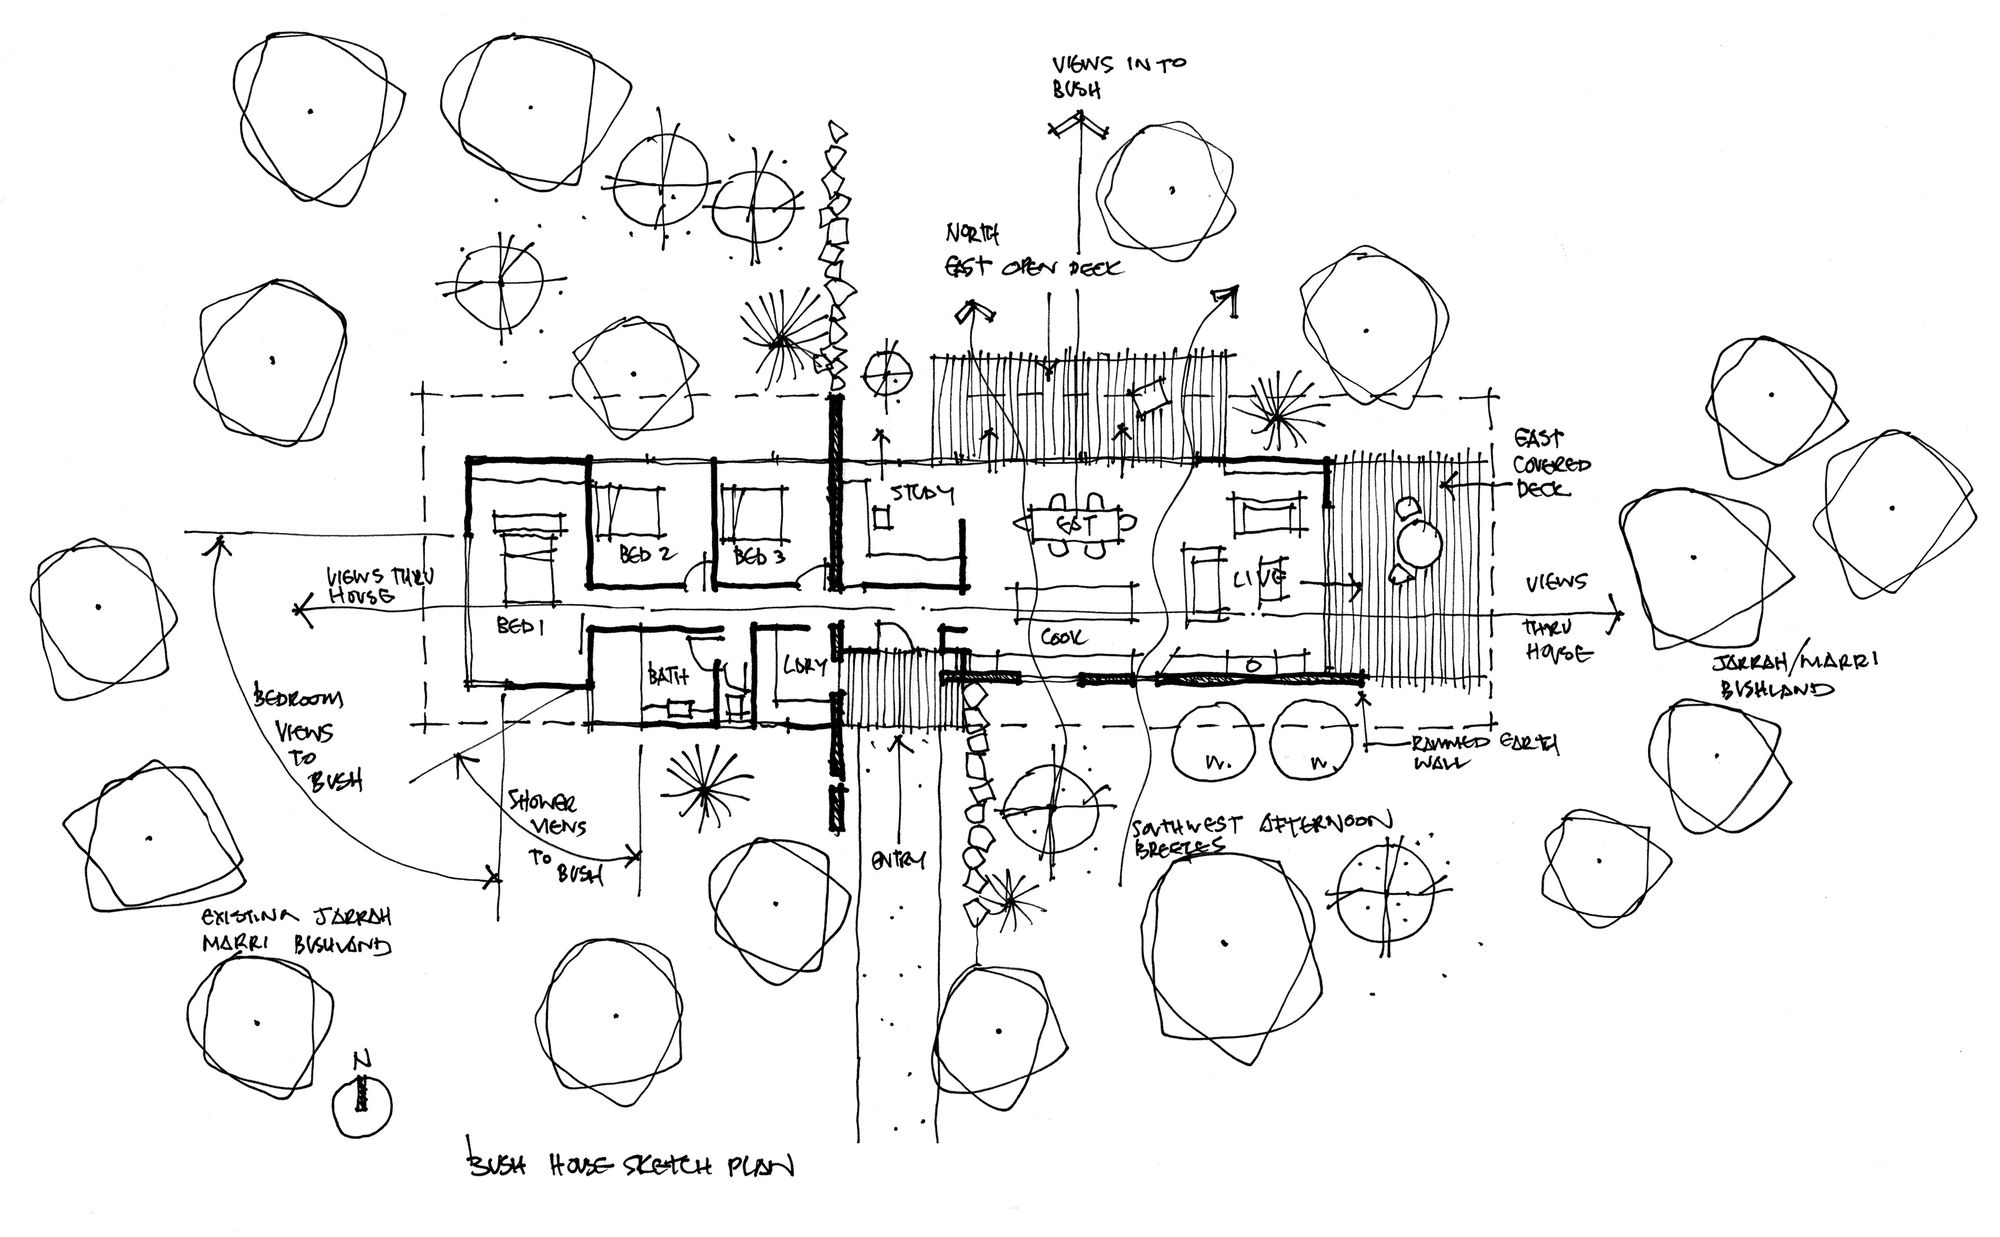 hight resolution of image 24 of 28 from gallery of bush house archterra architects croquis floor plan